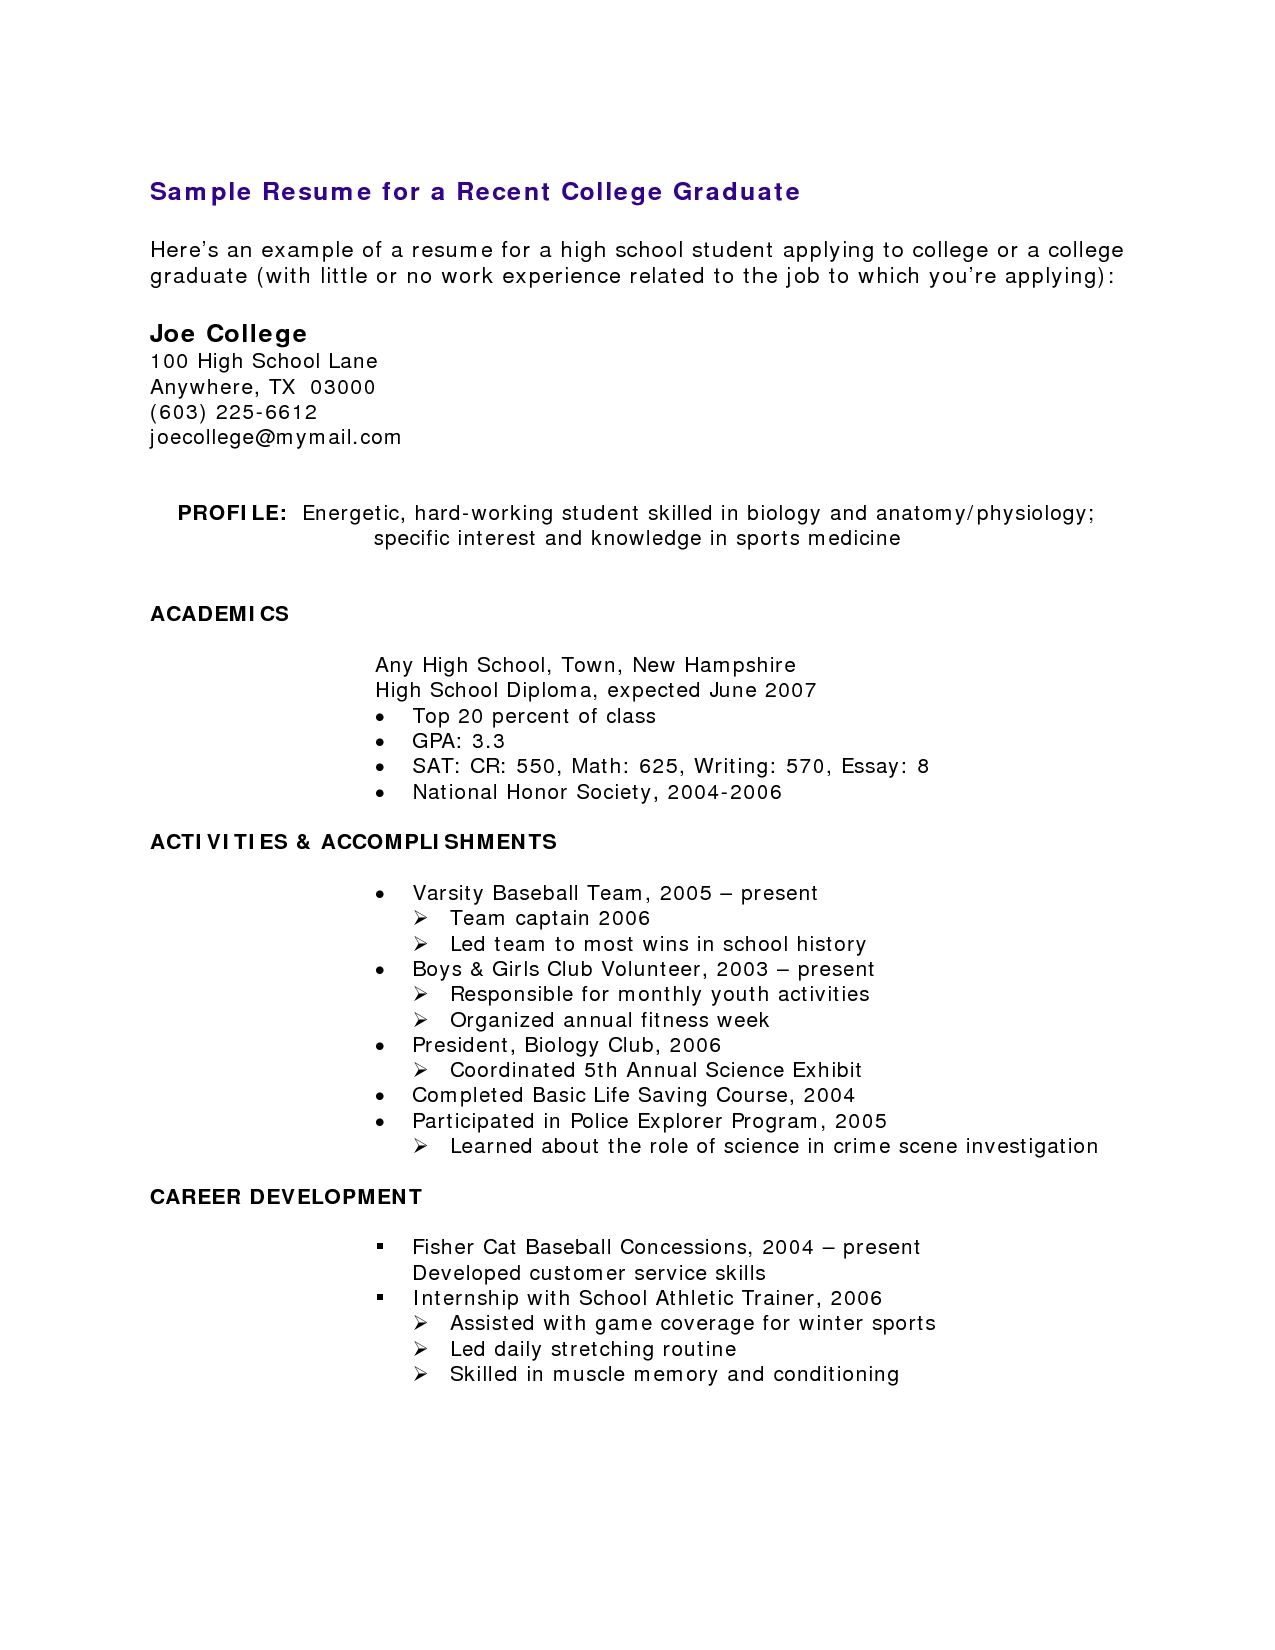 certified tumor registrar sample resume example of business letter